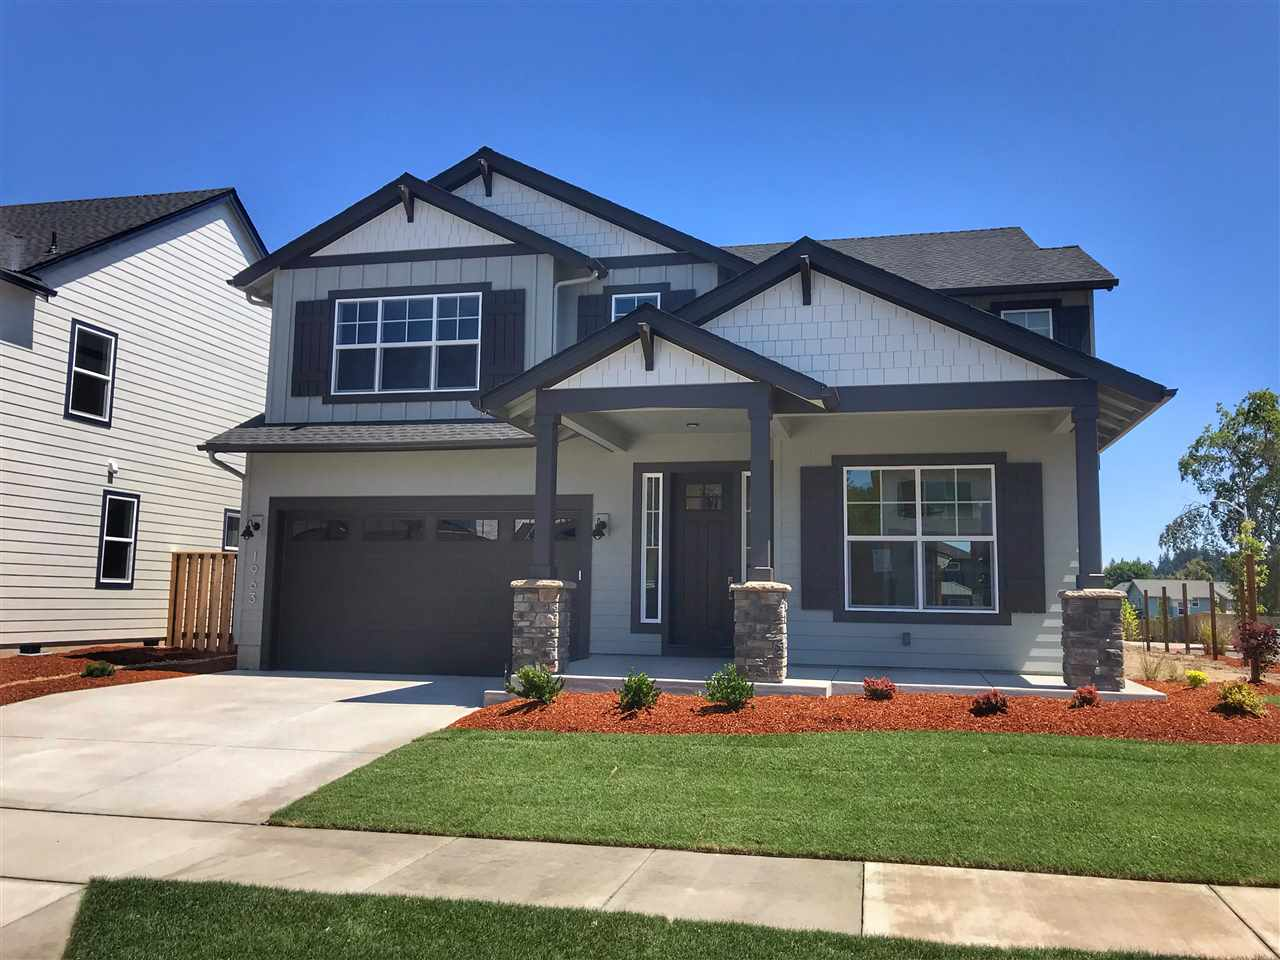 """Brand New Construction by Legend Homes & beautiful new Corvallis neighborhood.  Move-in ready today.  The """"Moreland 2"""".  Desirable floorplan inc. spacious open flrplan, gracious kitchen with large pantry & dining rm,  4 bedrooms with a main floor guest suite/den & bonus/media room.  The gracious MBR suite incl. freestanding soaking tub, tiled shower, huge closet and more.  Beautiful and spacious for sure.  Many models open Sat-Sun 11-3. Backyard landscaping & select privacy window coverings included."""